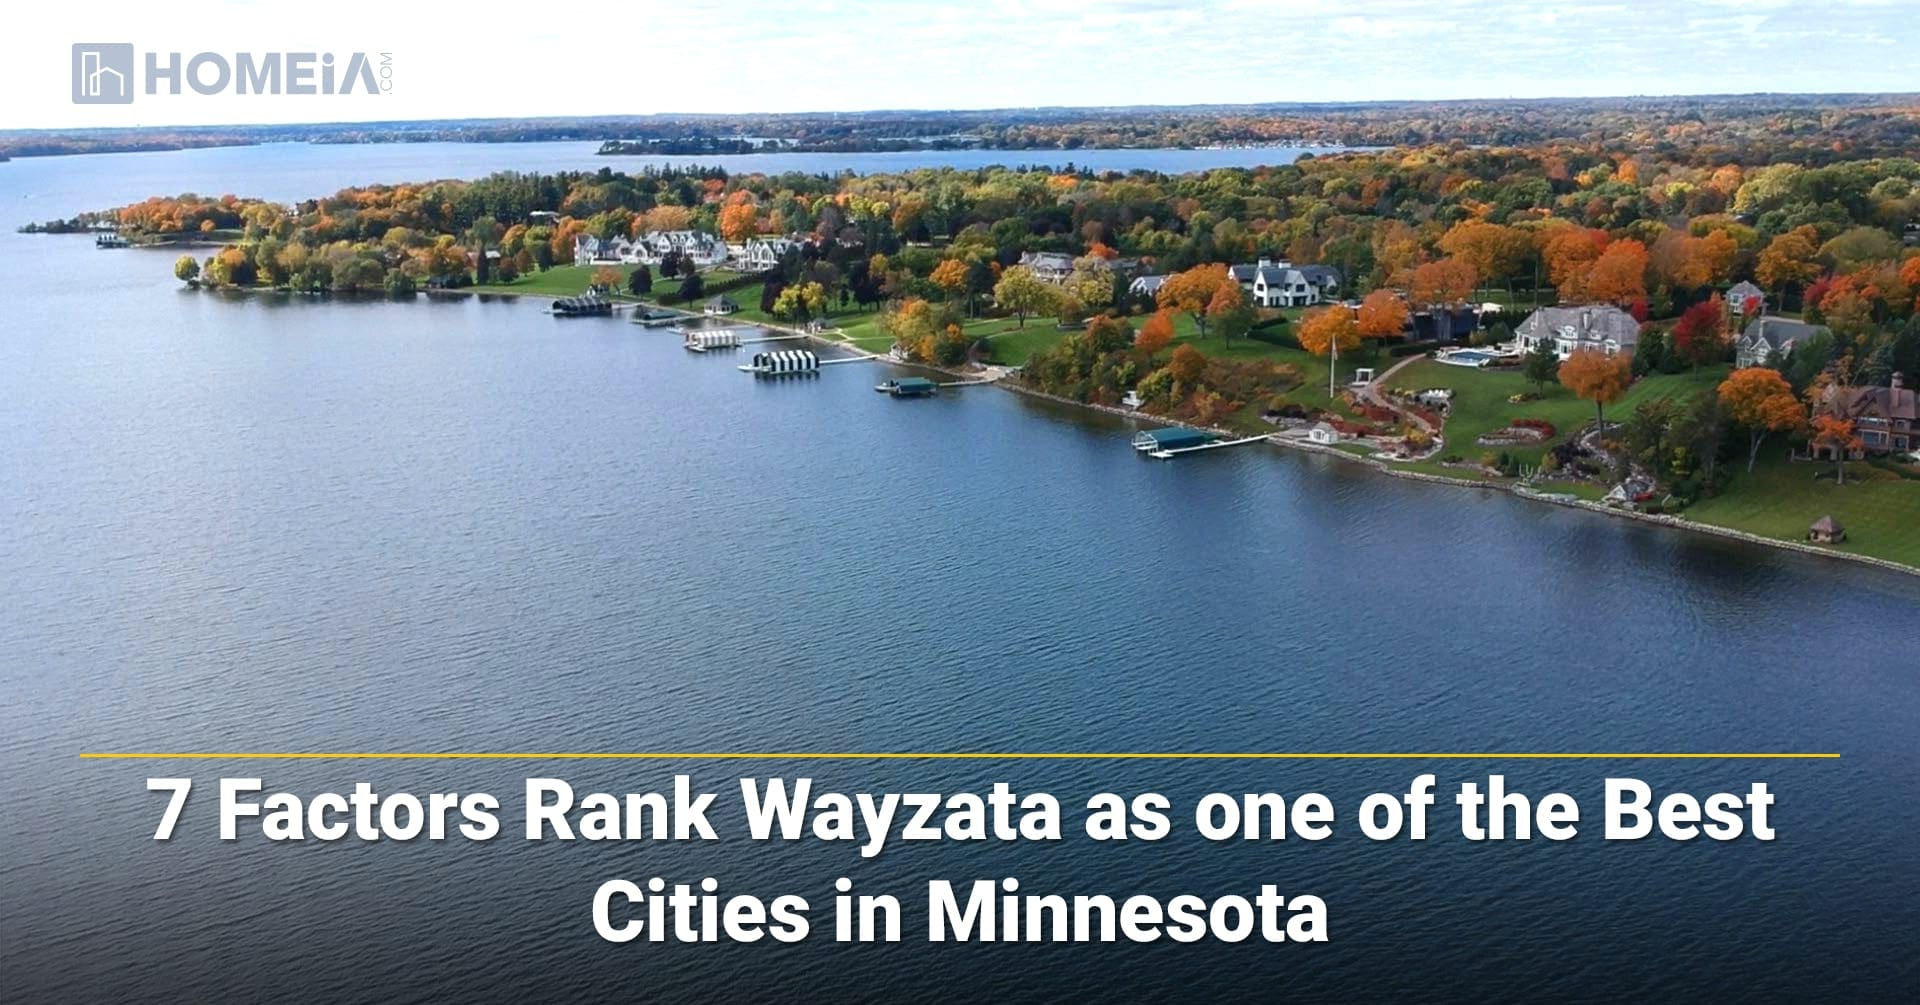 7 Factors Rank Wayzata as one of the Best Cities in Minnesota